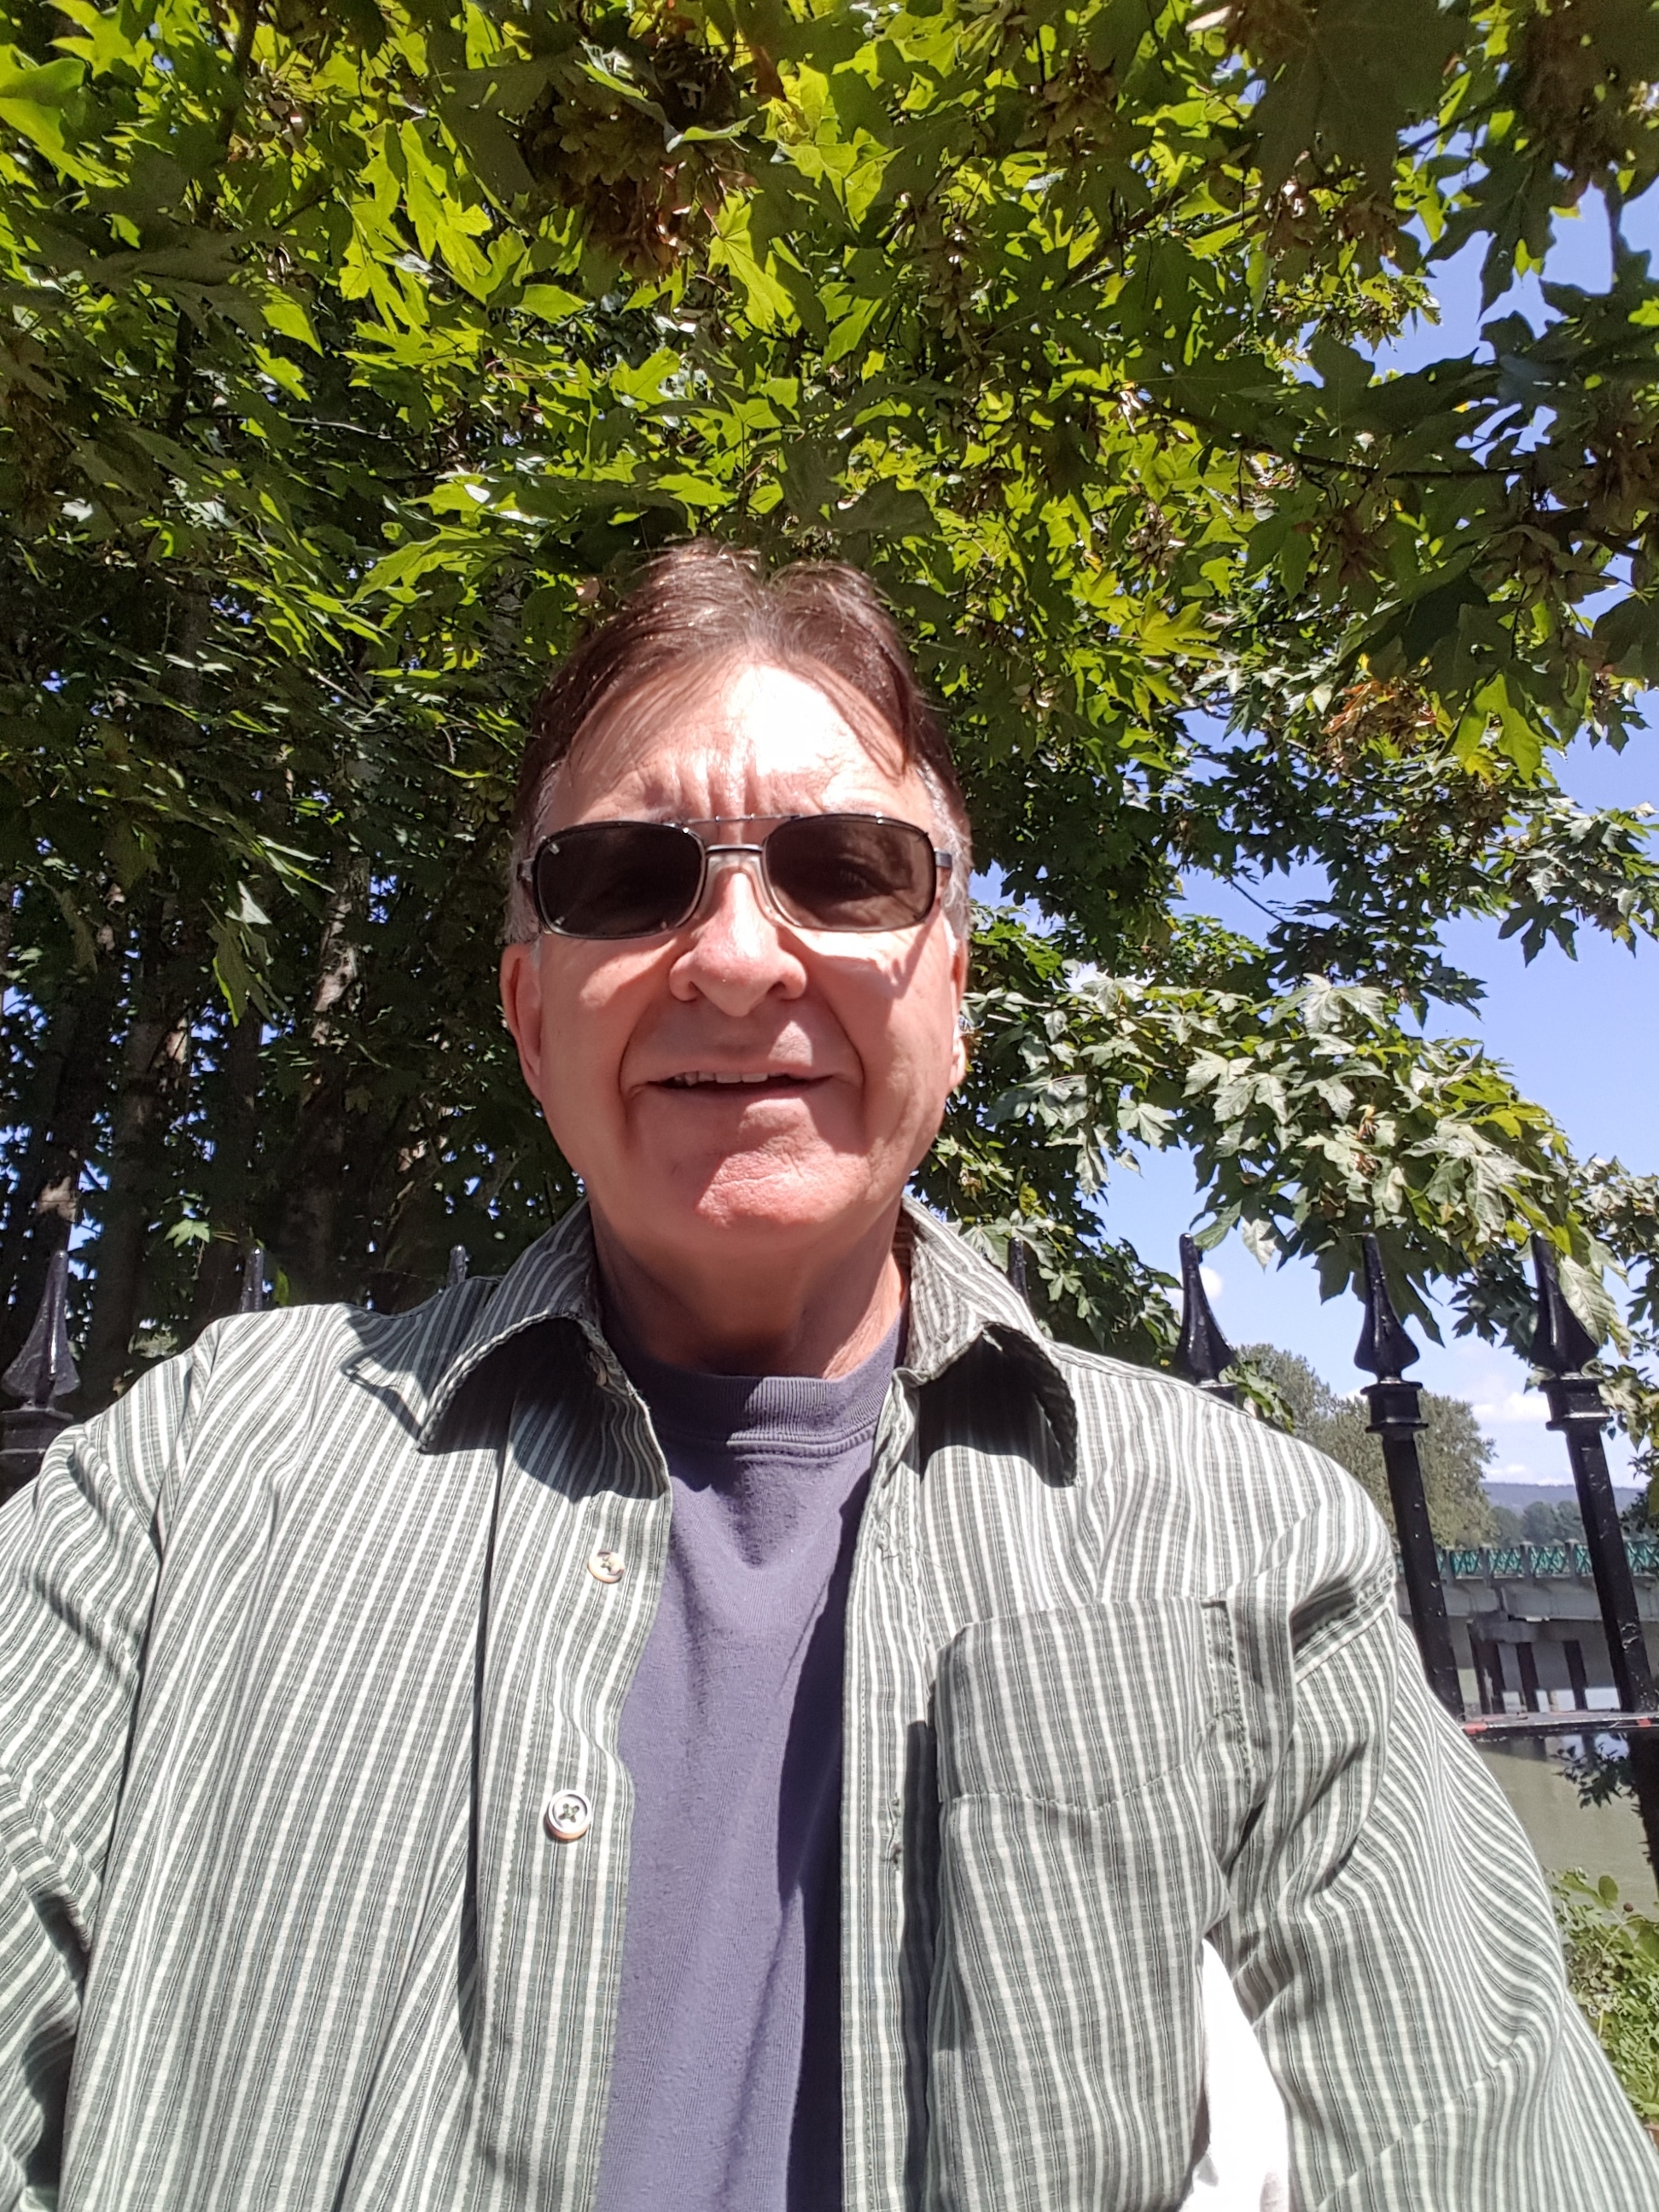 fraser singles over 50 There are a lot of misconceptions about men and women over 50  11 tips for singles over 40:  11 myths about dating over 50 march 22,.